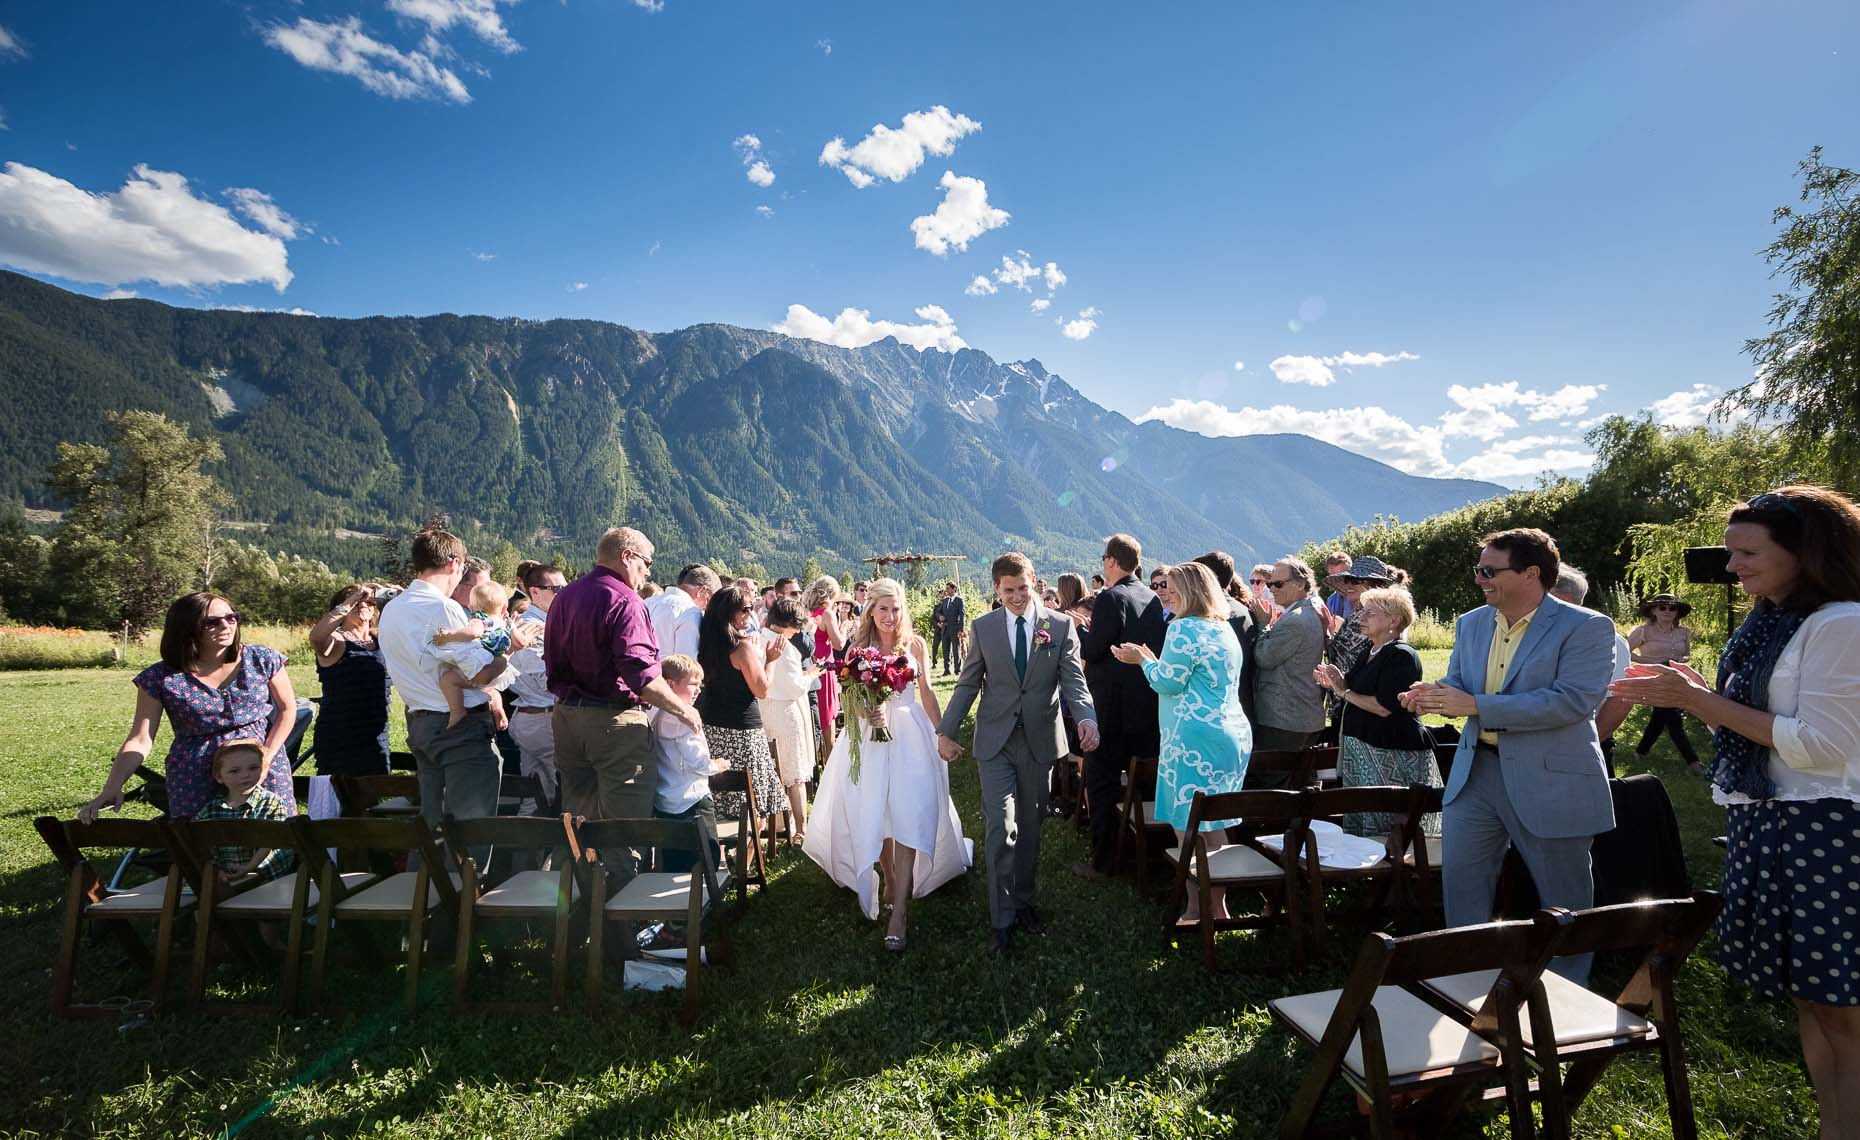 Farm wedding in the mountains of Pemberton BC